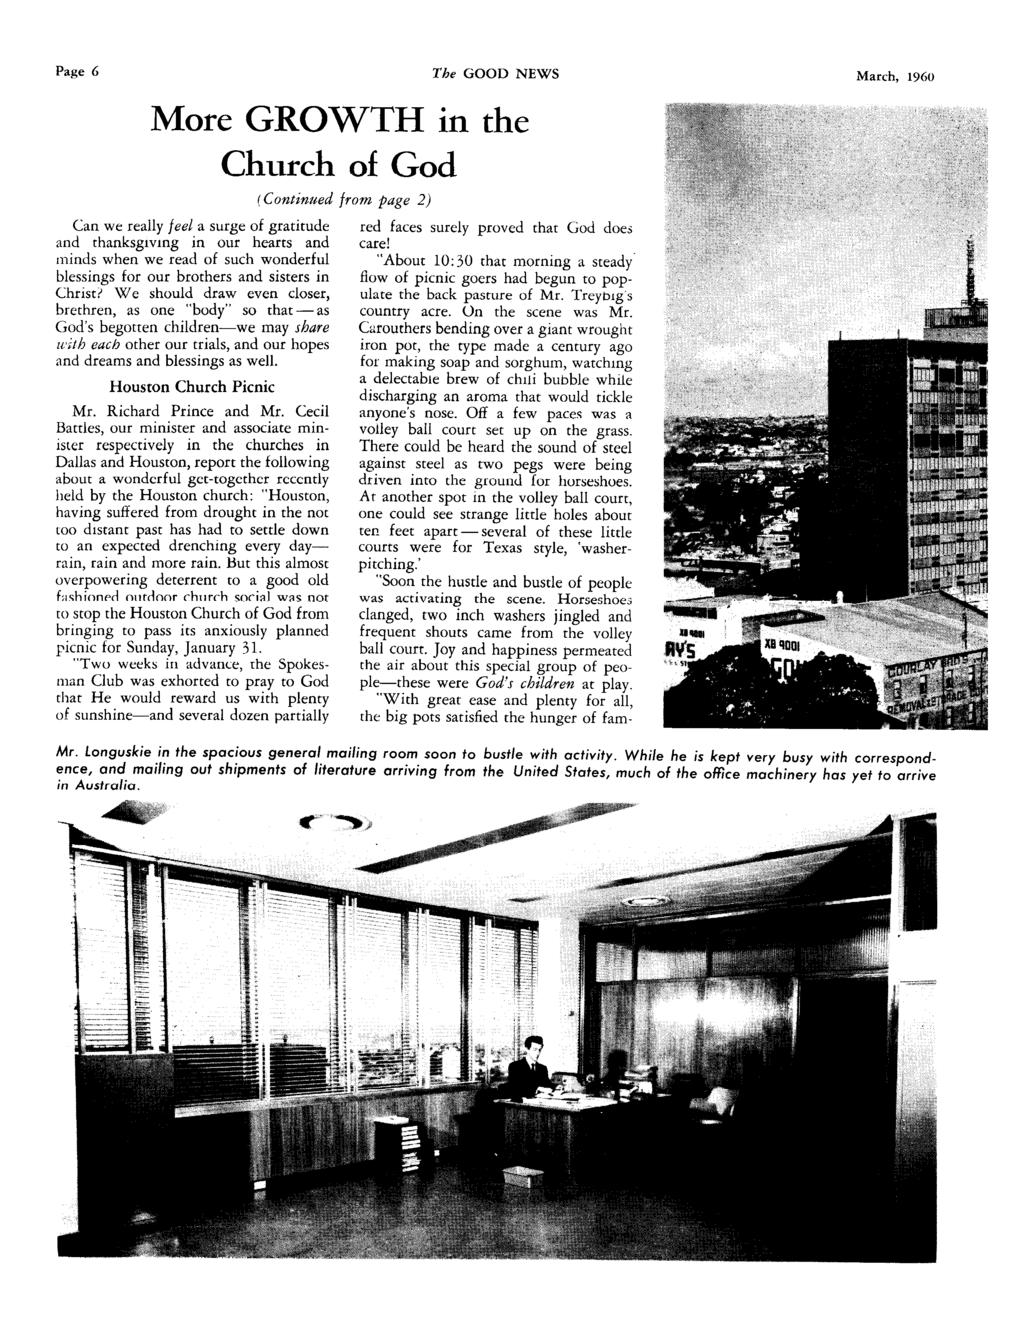 Page 6 The GOOD NEWS March, 1960 More GROWTH in the Church of God (Continued from page 2) Can we really feel a surge of gratitude and thanksgiving in our hearts and minds when we read of such